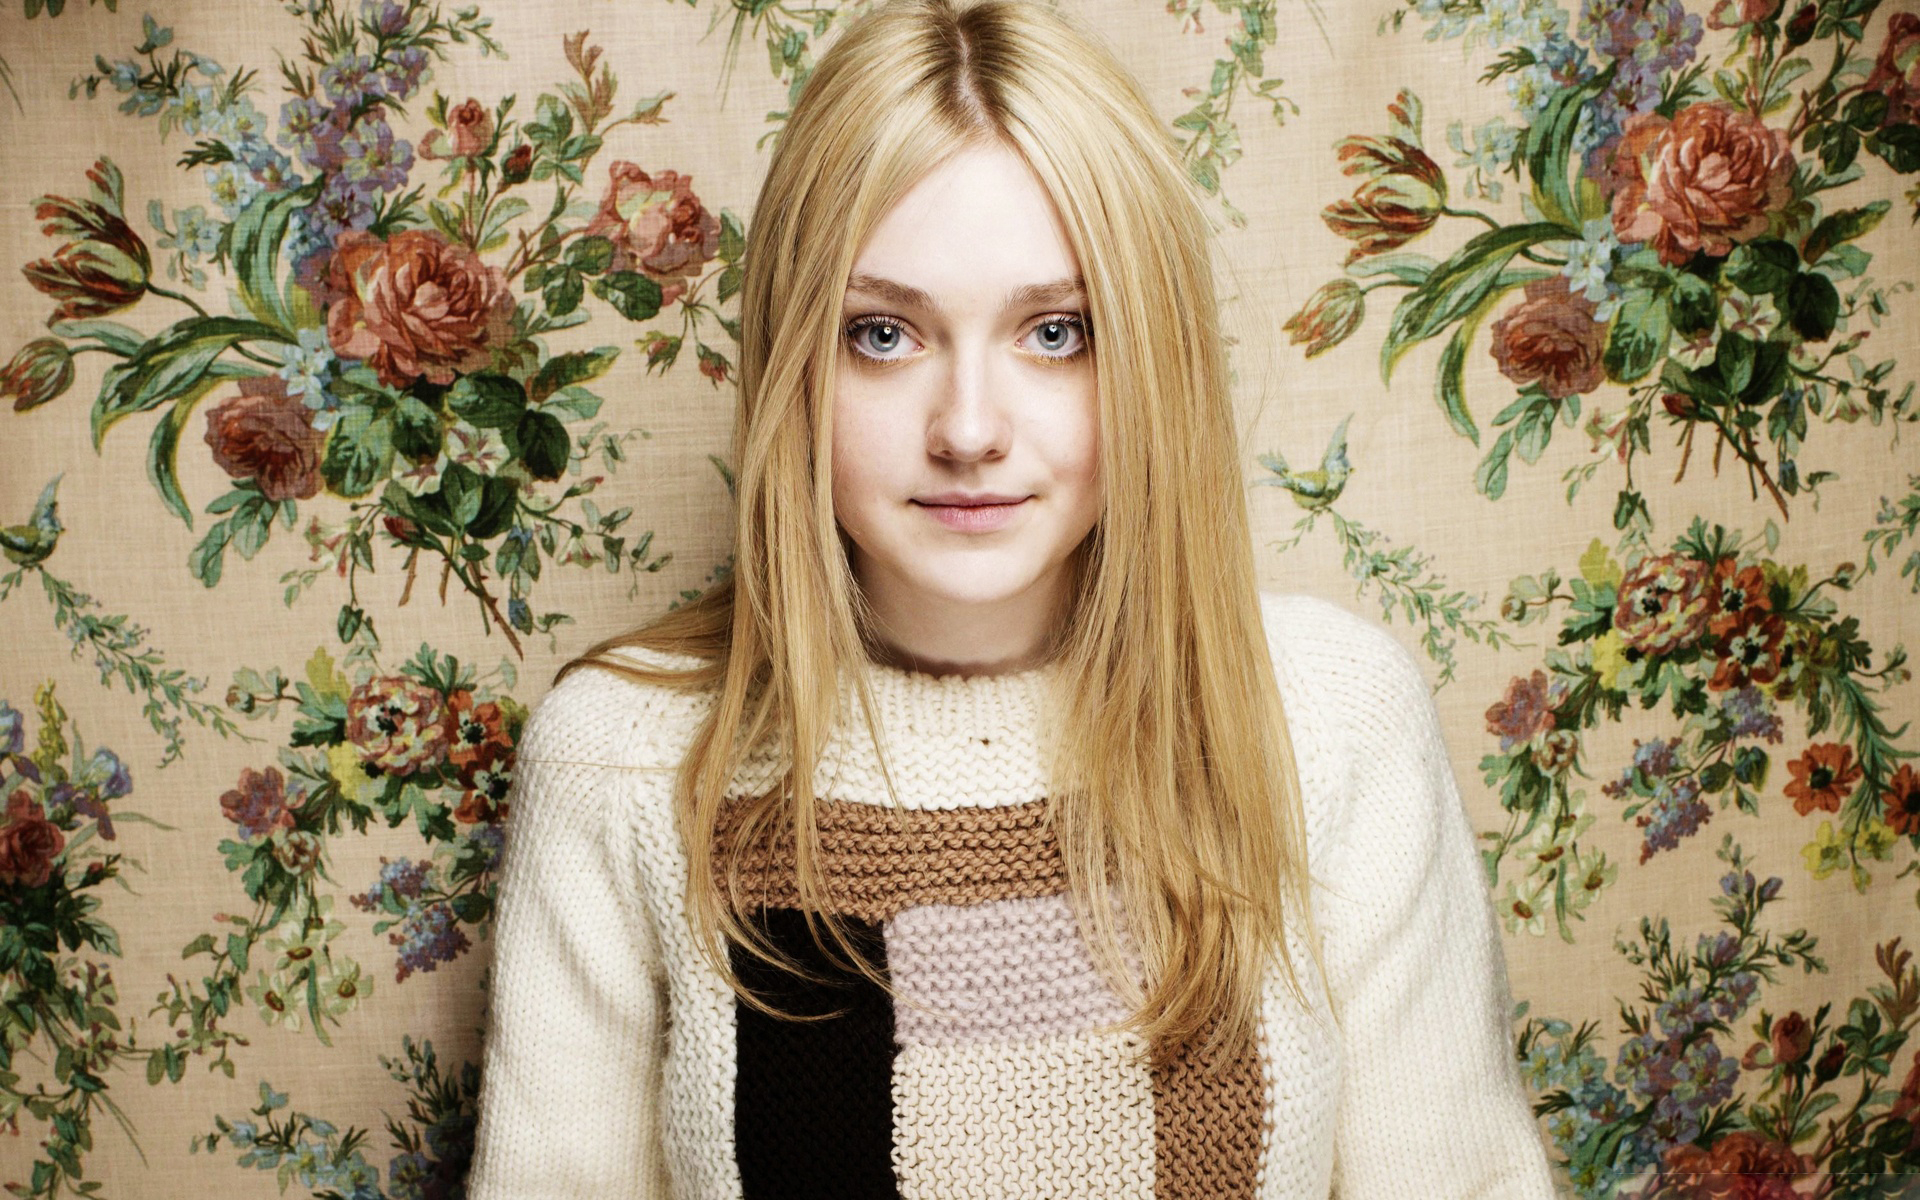 Dakota Fanning Hd Wallpaper - Facebook Cover - PoPoPics.com Dakota Fanning Blog